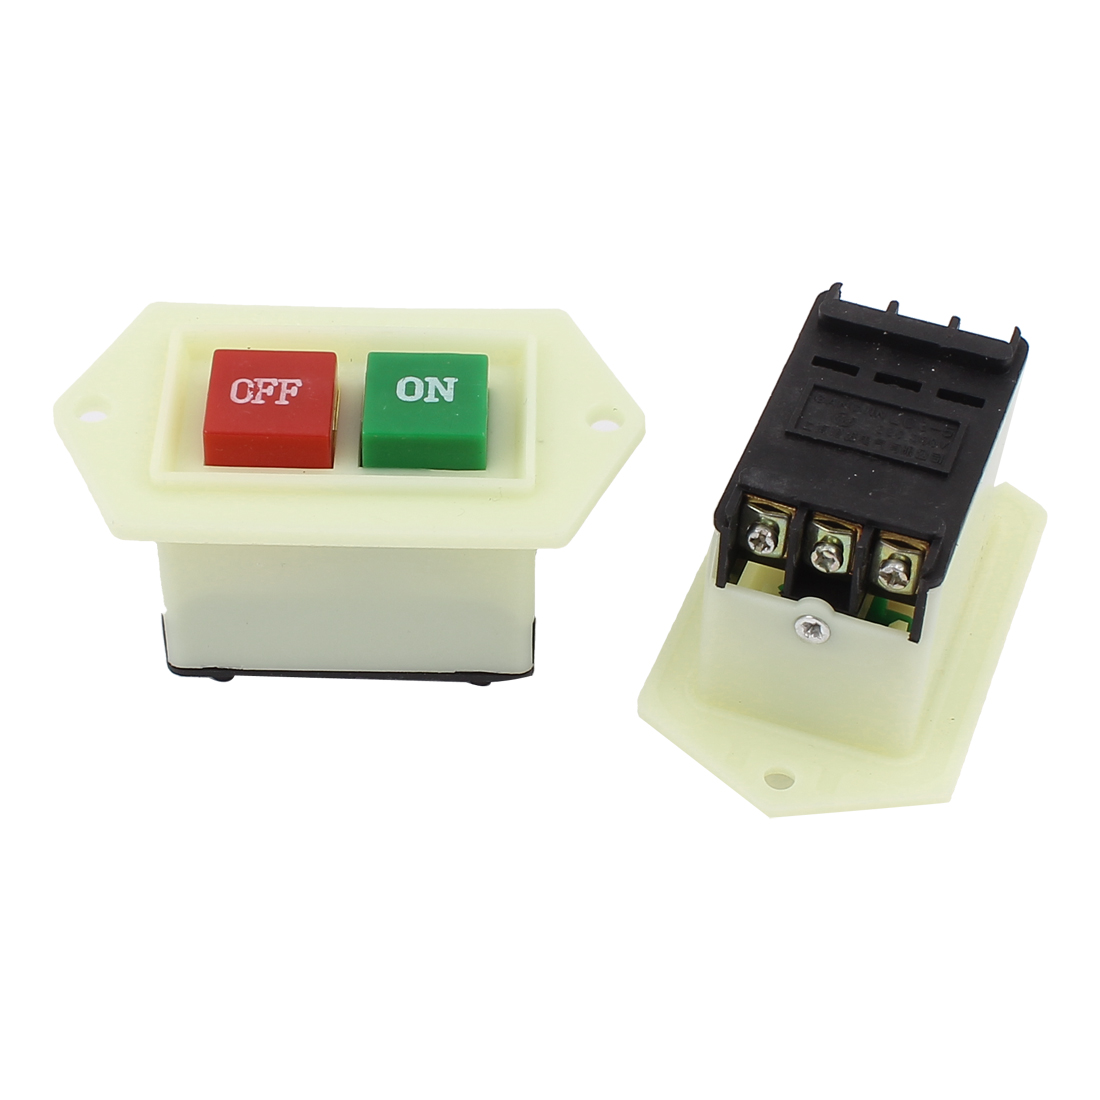 AC 220V/380V 5A 3 Phase Self-Locking ON/OFF Push Button Switch 2PCS